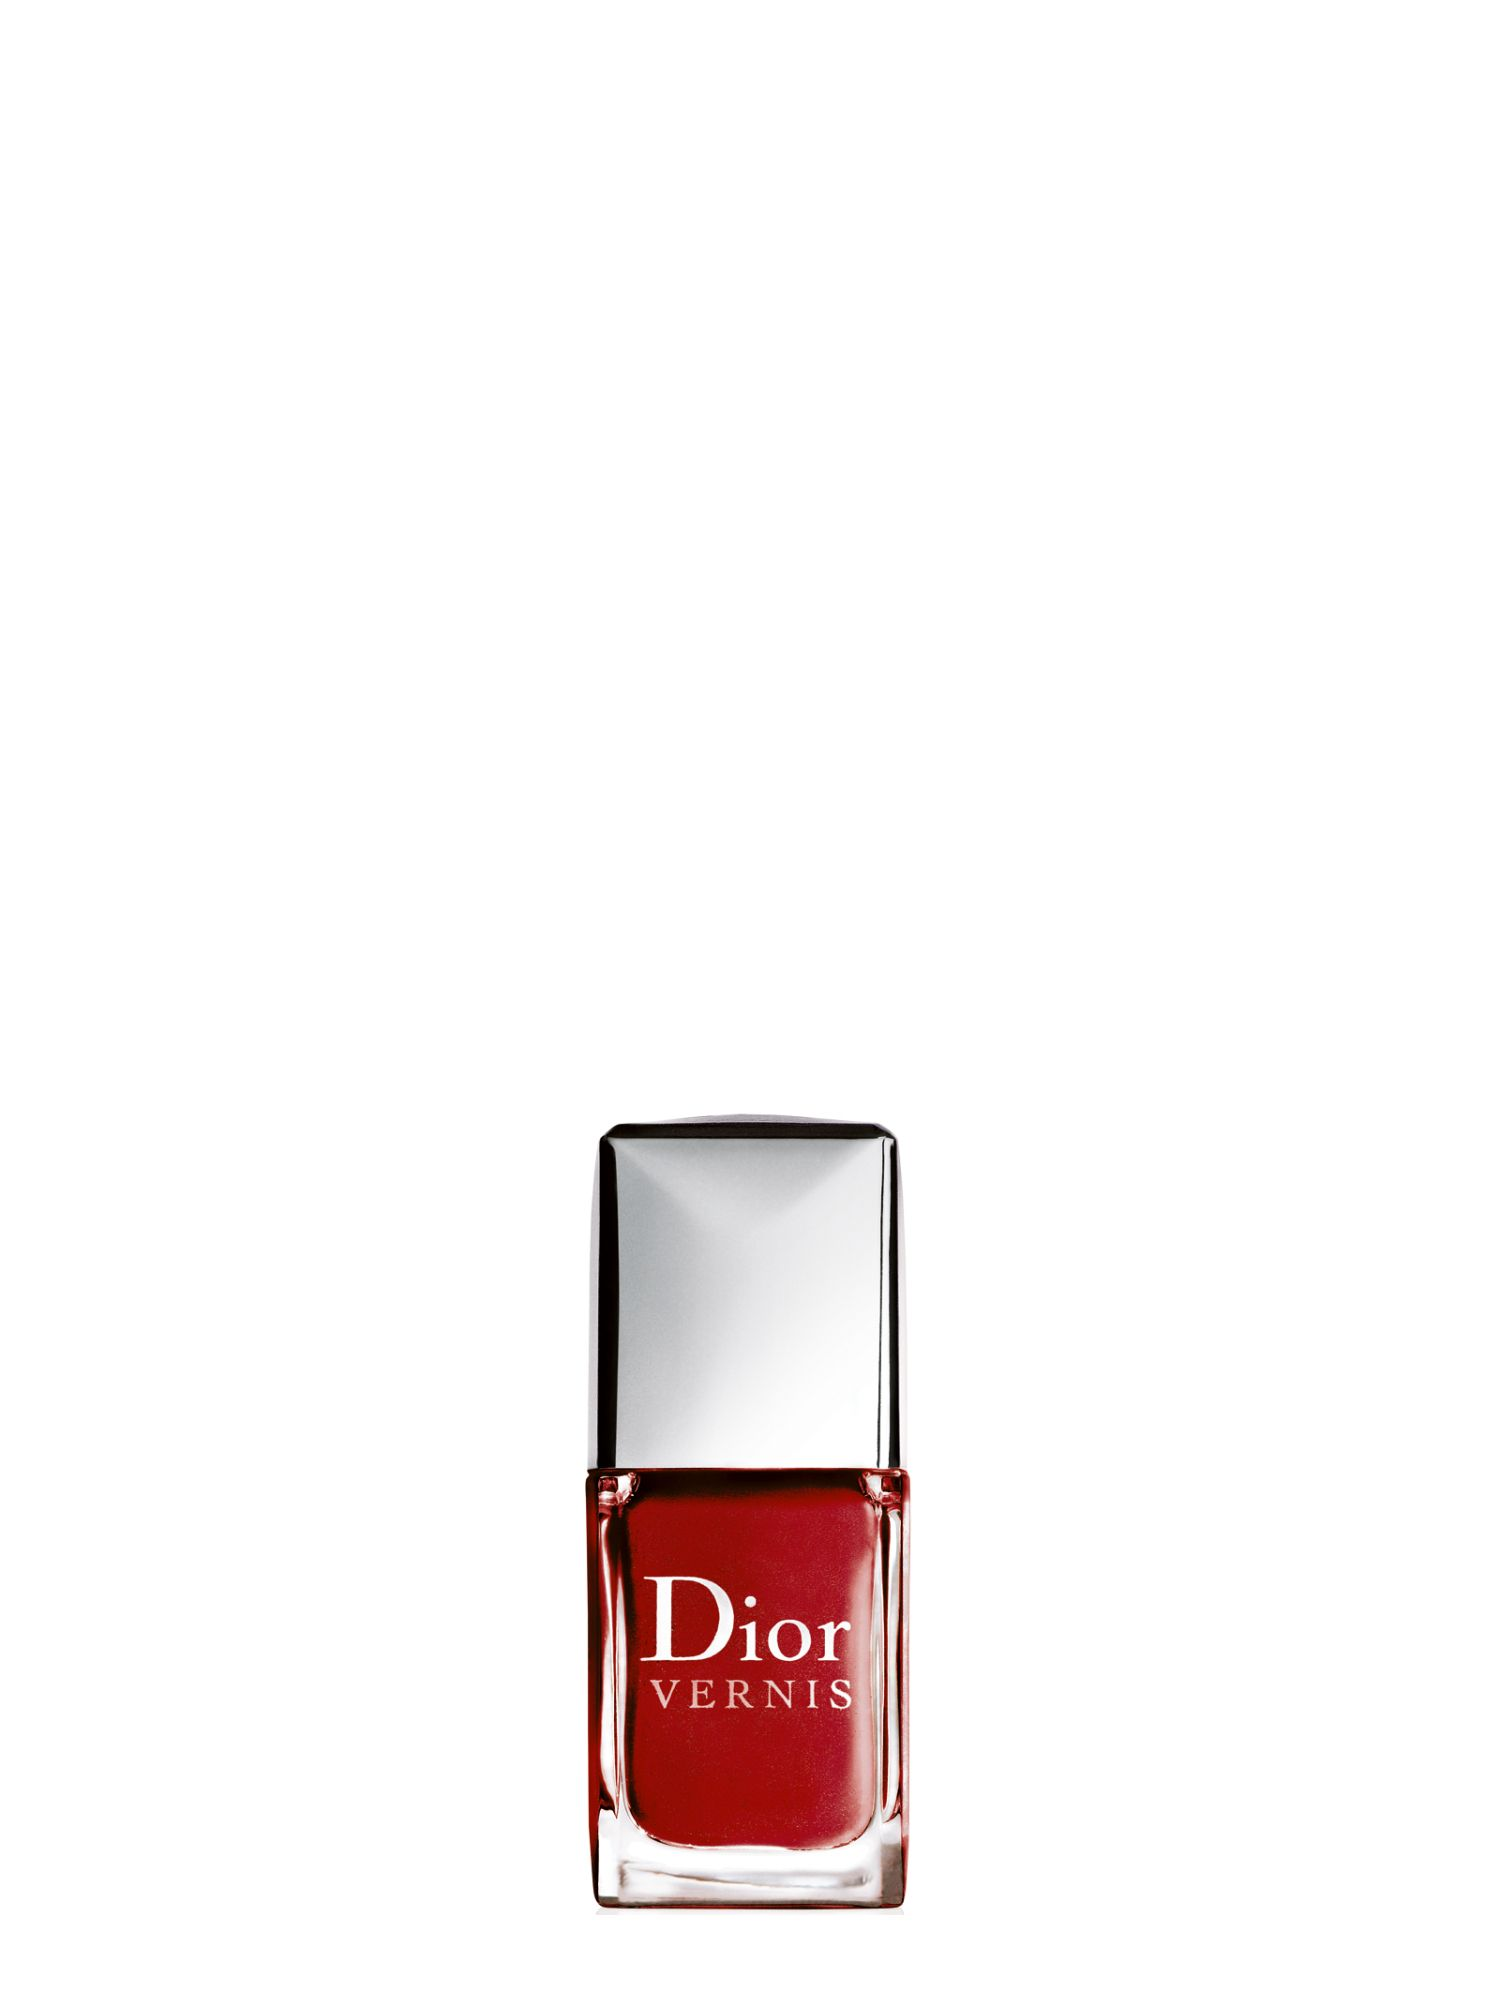 Dior Vernis Long-Wearing Nail Lacquer RED TEA product image